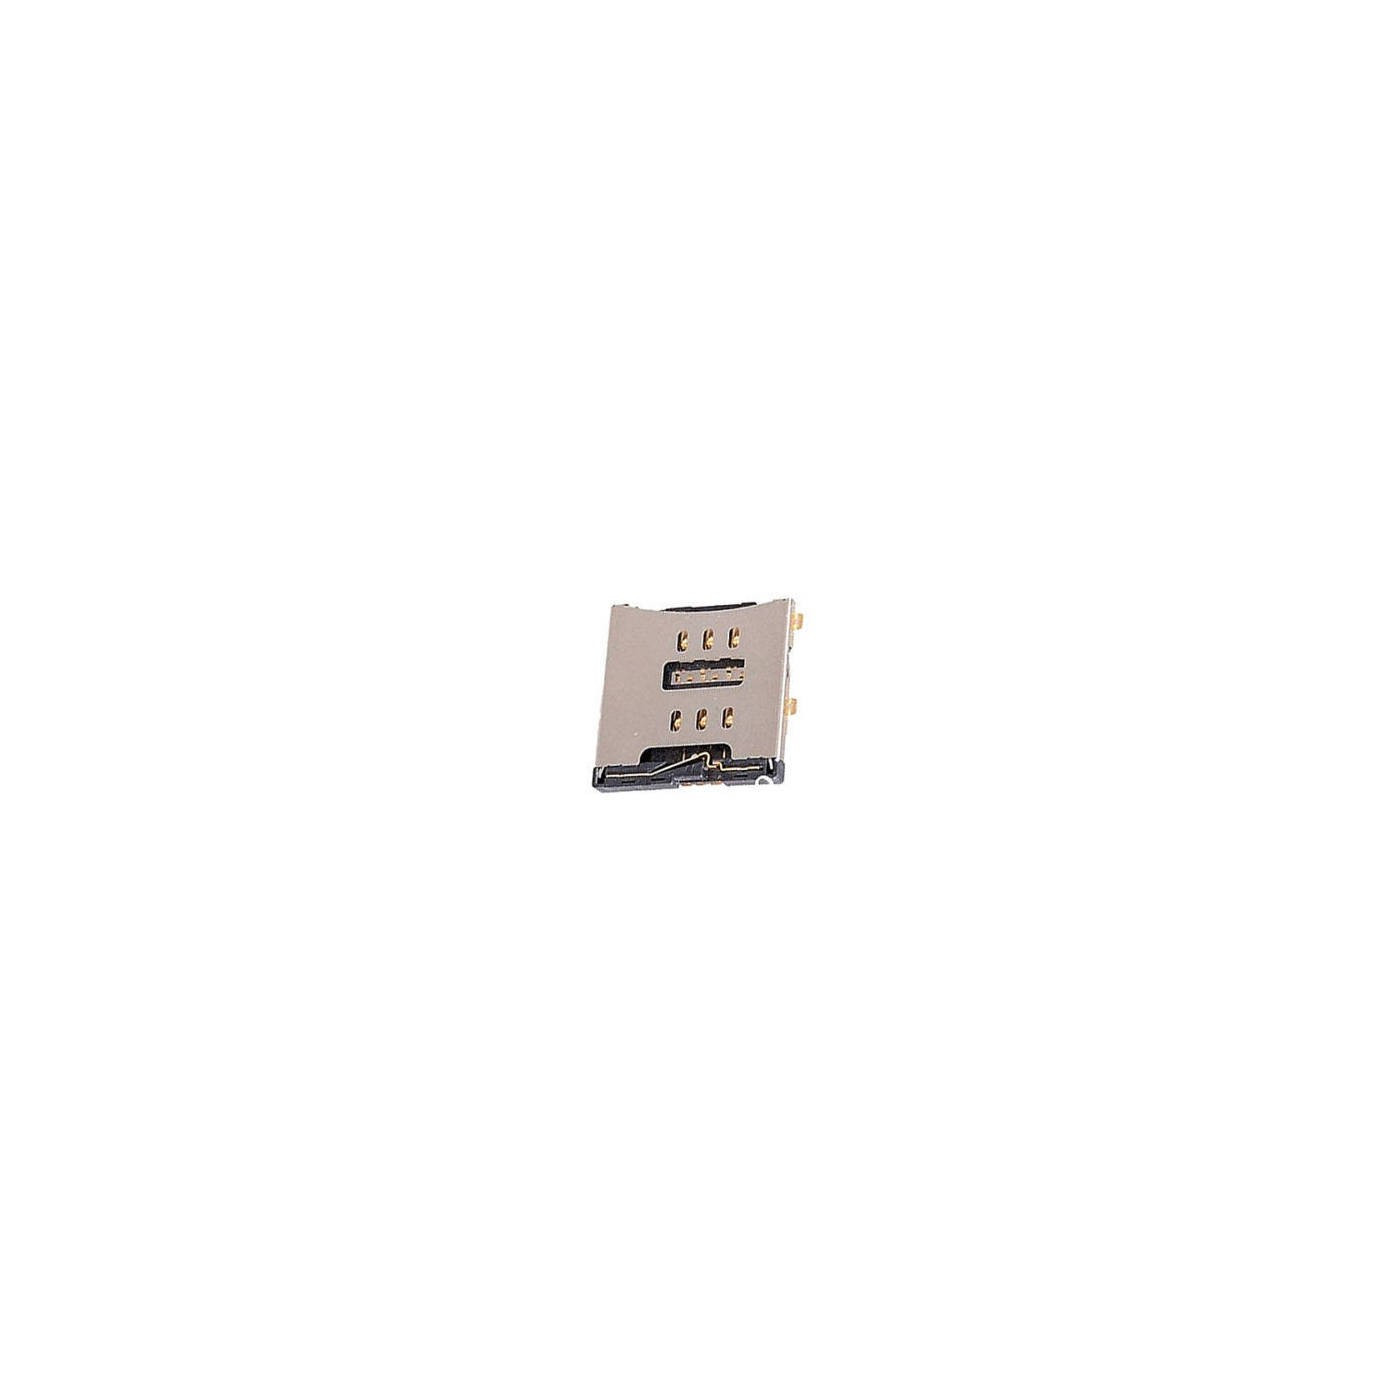 Connettore sim card per Iphone 6 Plus lettore nano SIM Card Reader